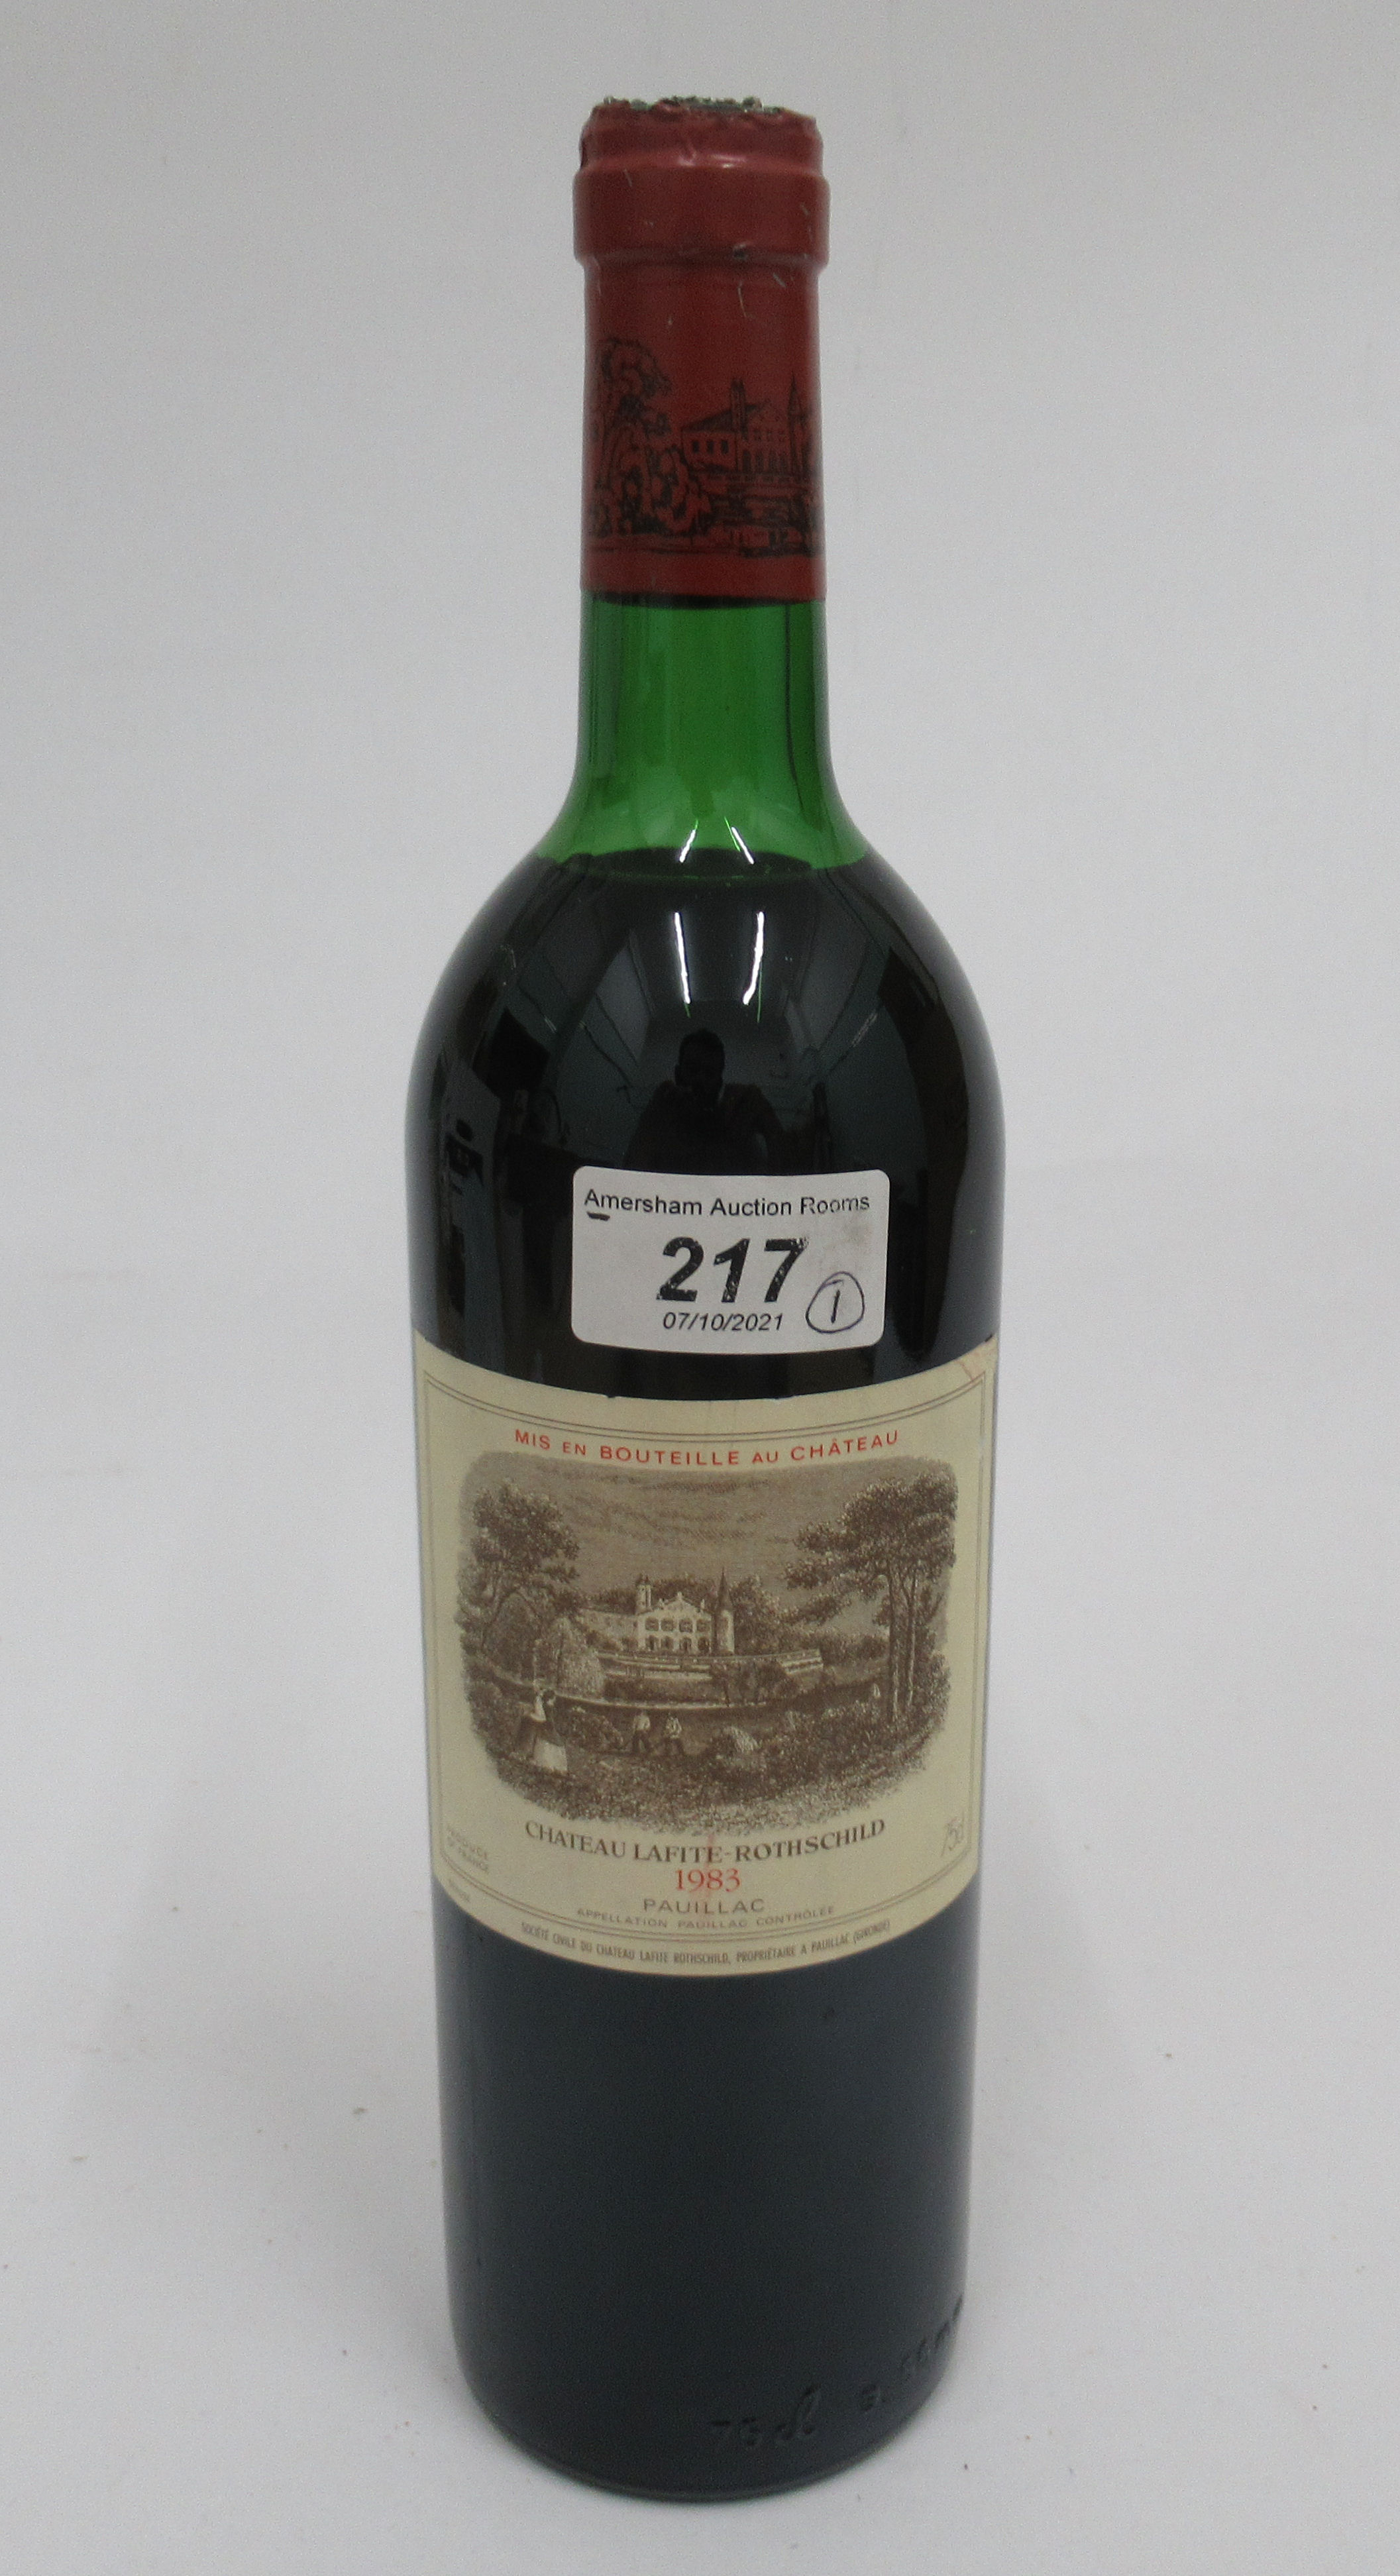 Wine, a bottle of 1983 Chateau Lafite Rothschild